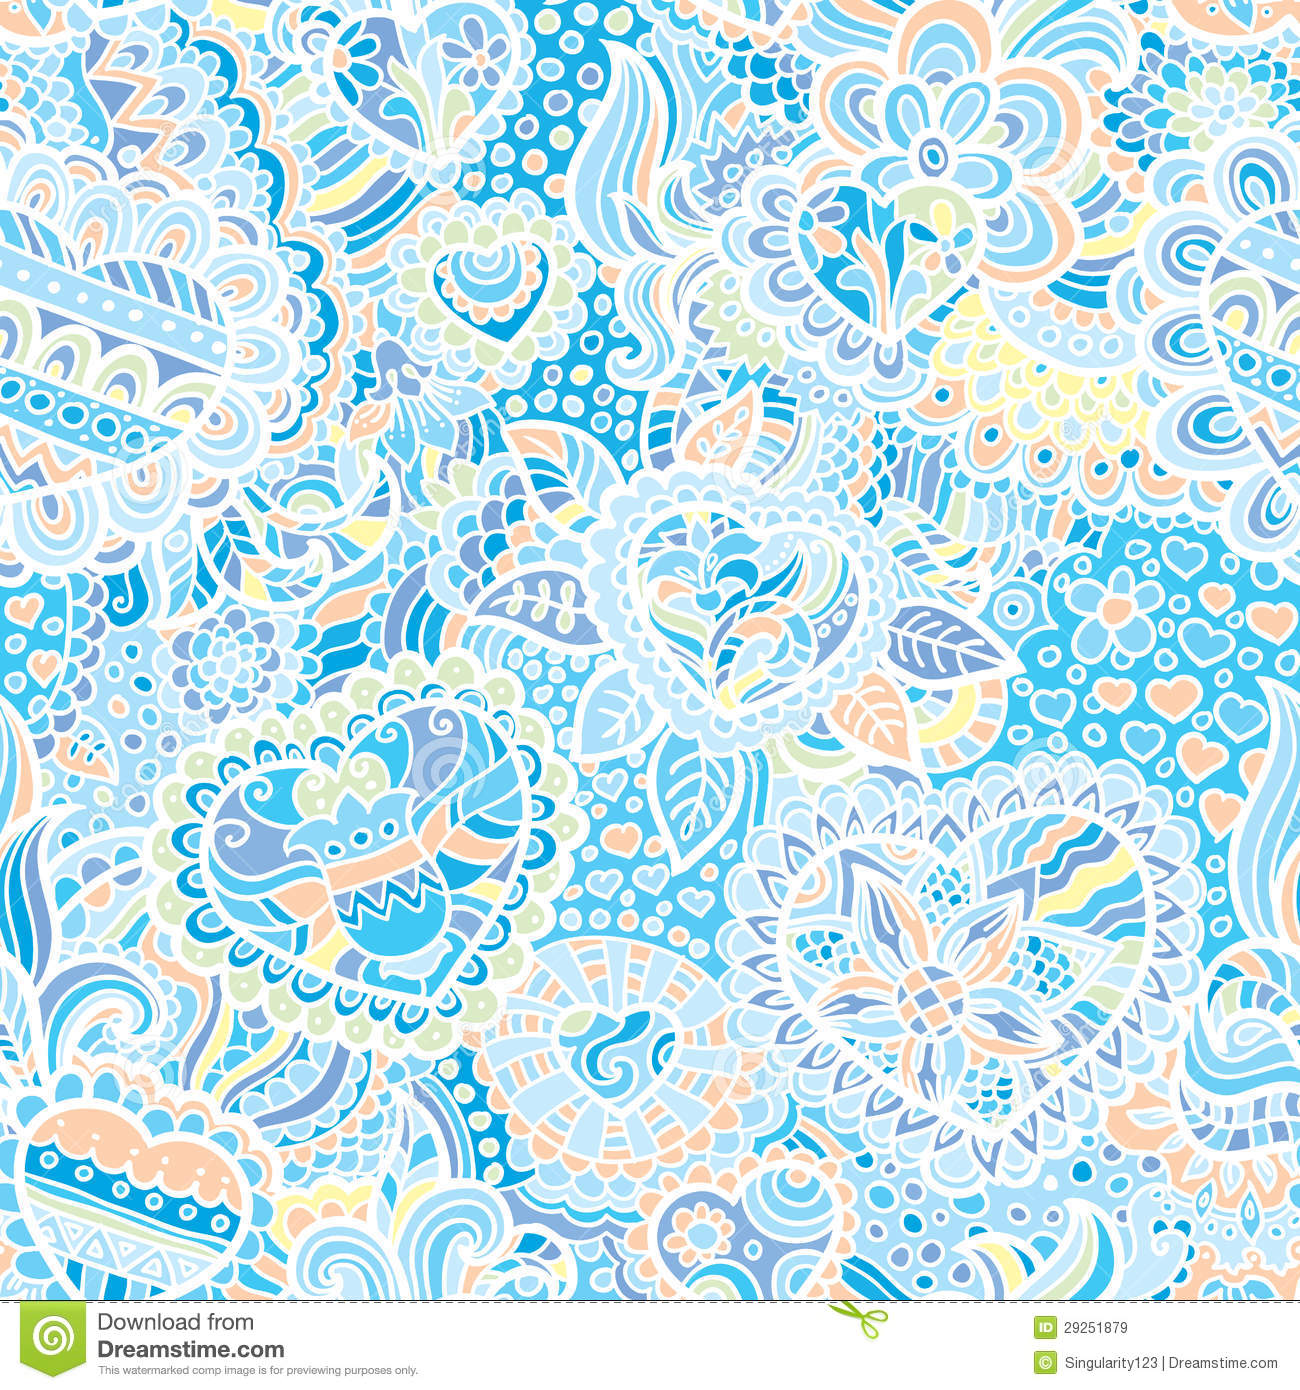 Seamless doodle wallpaper stock vector. Image of love ...